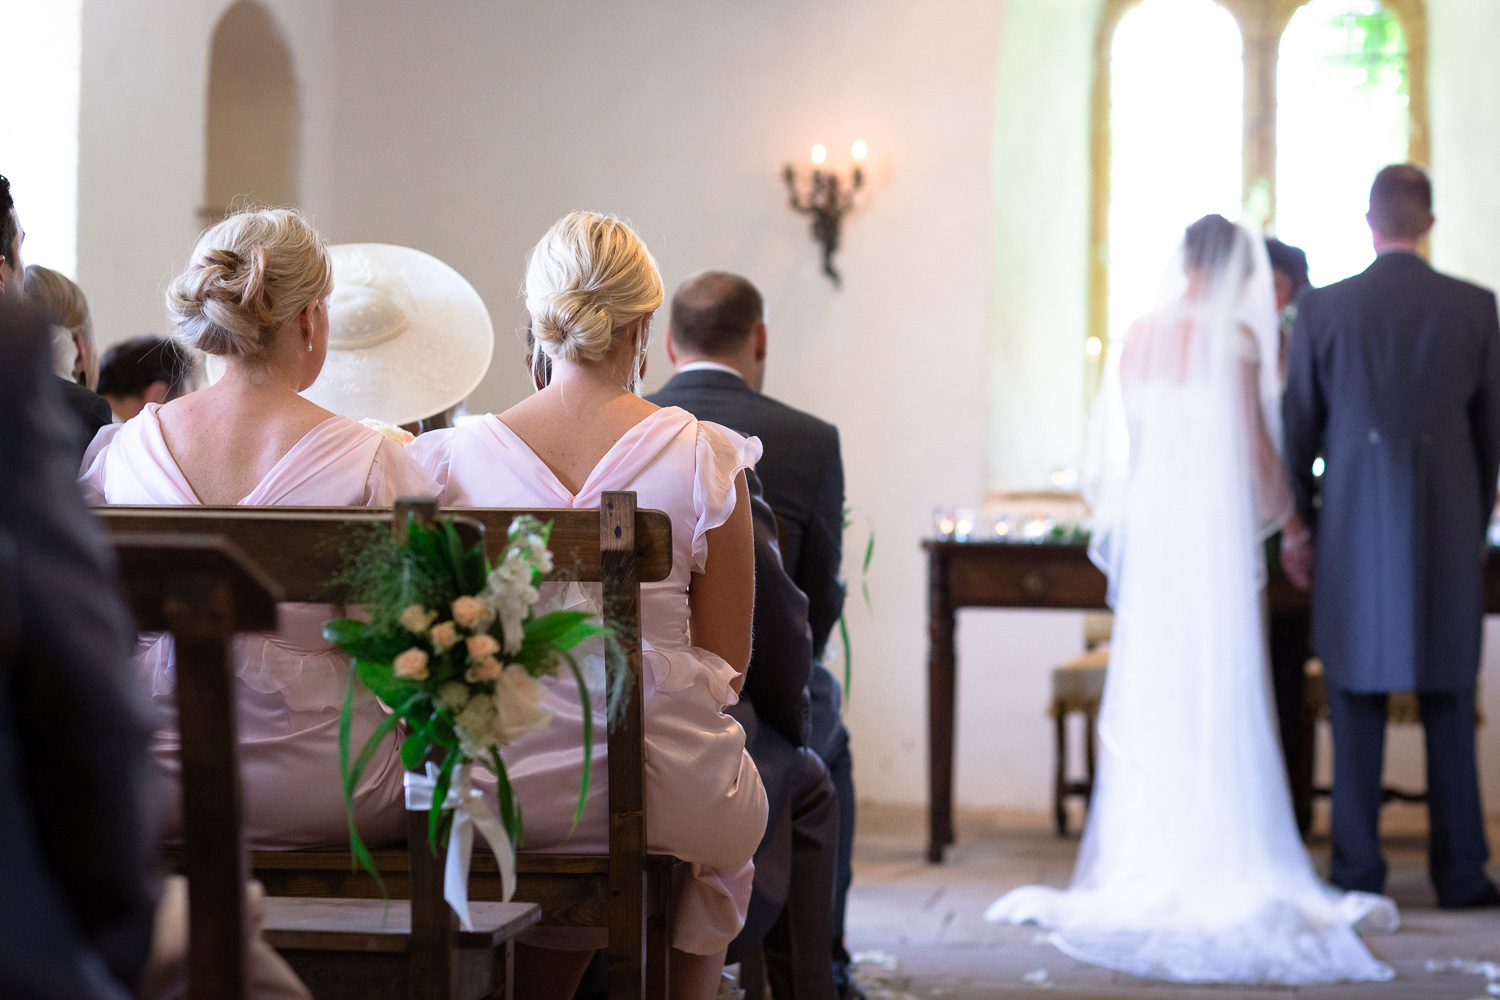 Wedding photography portfolio bridesmaids watching marriage vows